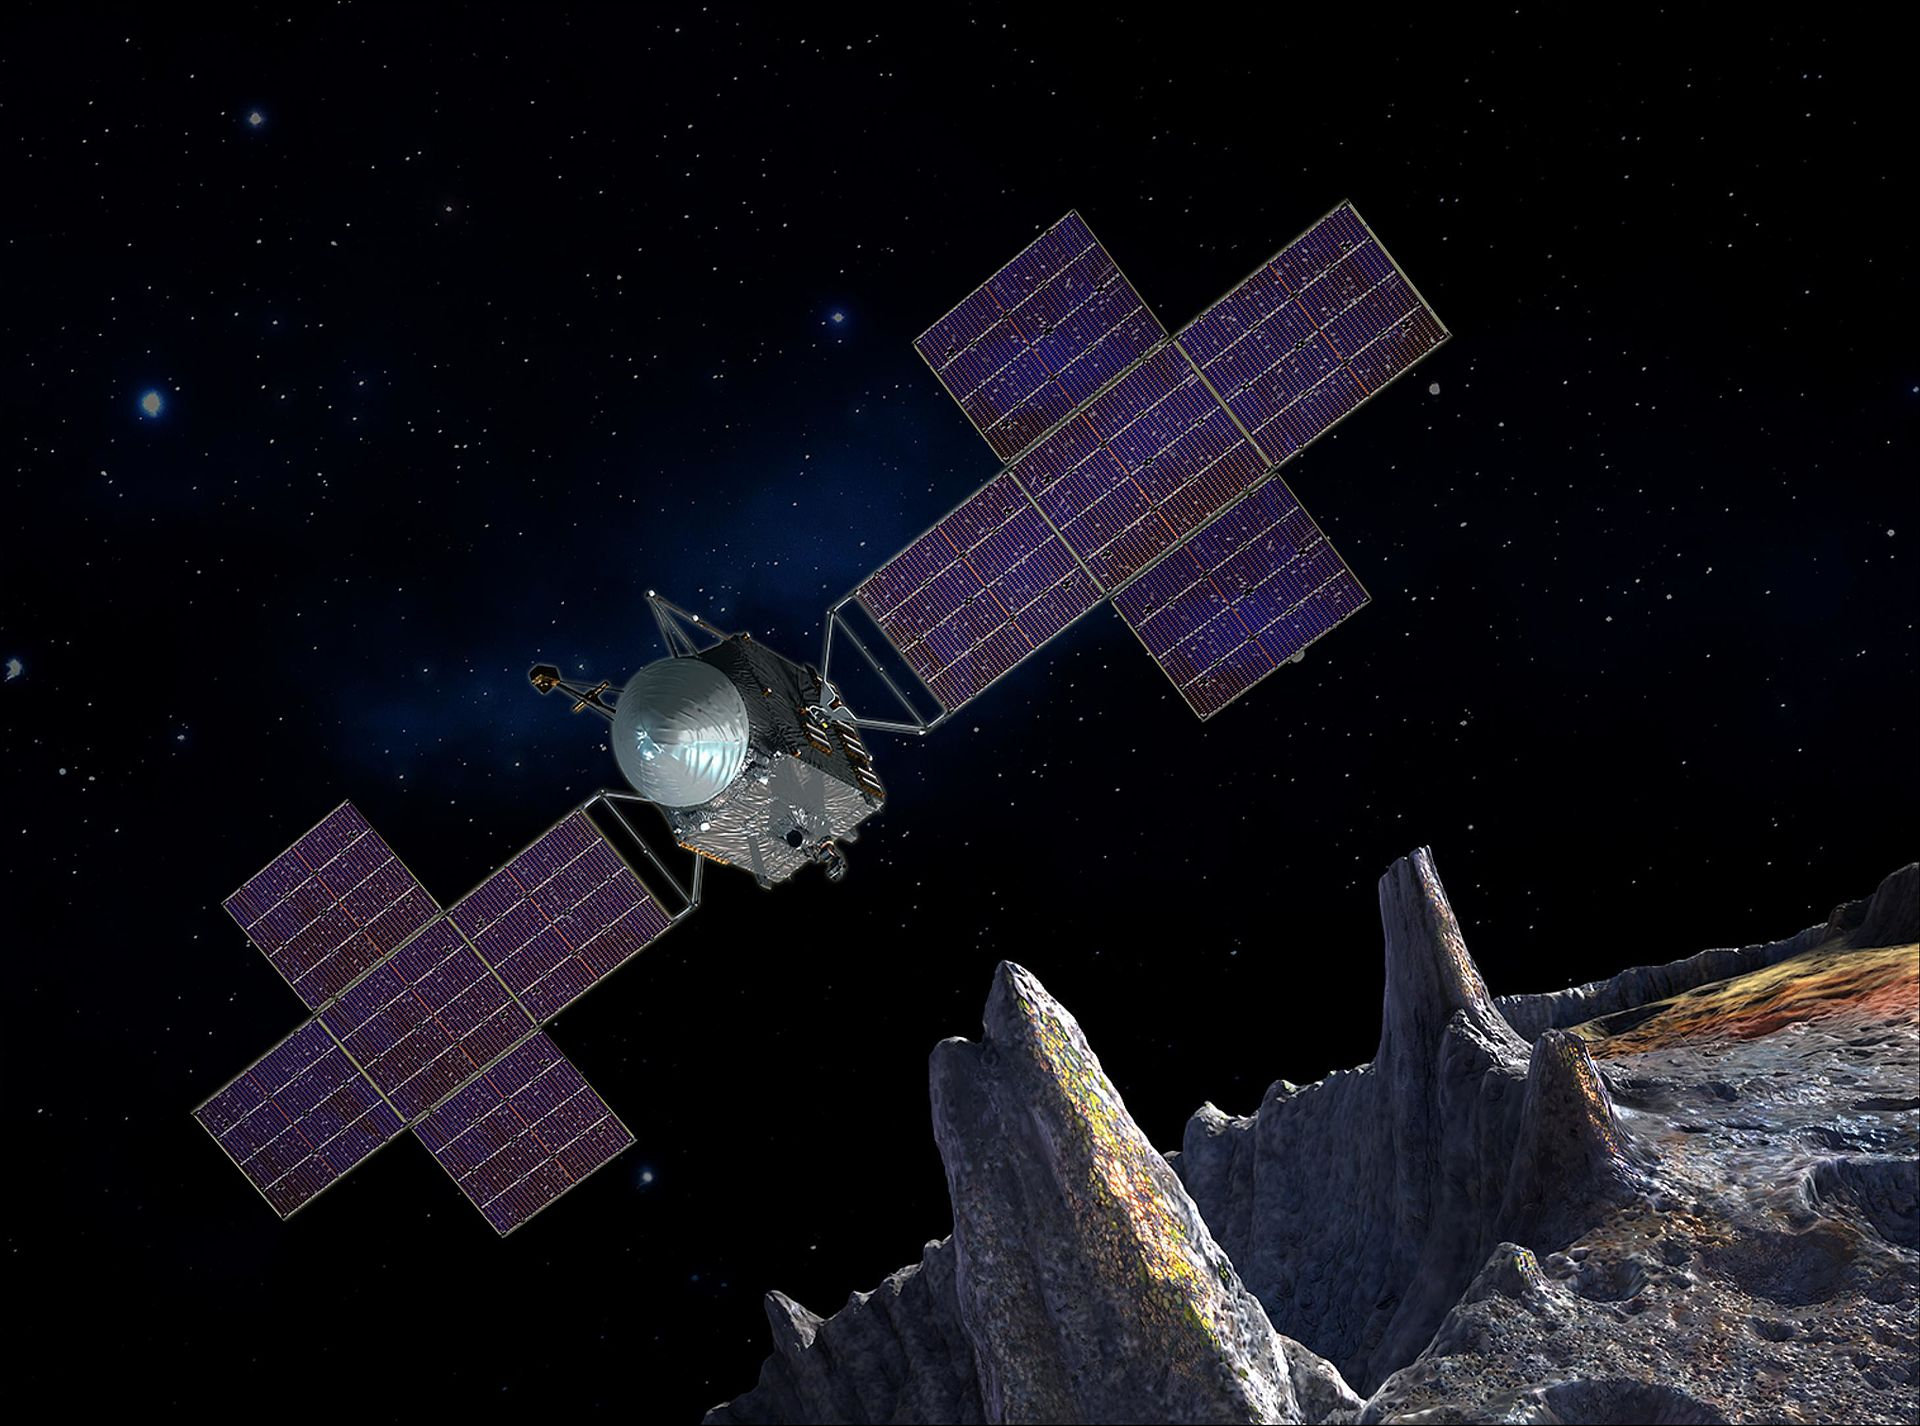 PIA21499_-_Artist's_Concept_of_Psyche_Spacecraft_with_Five-Panel_Array.jpg